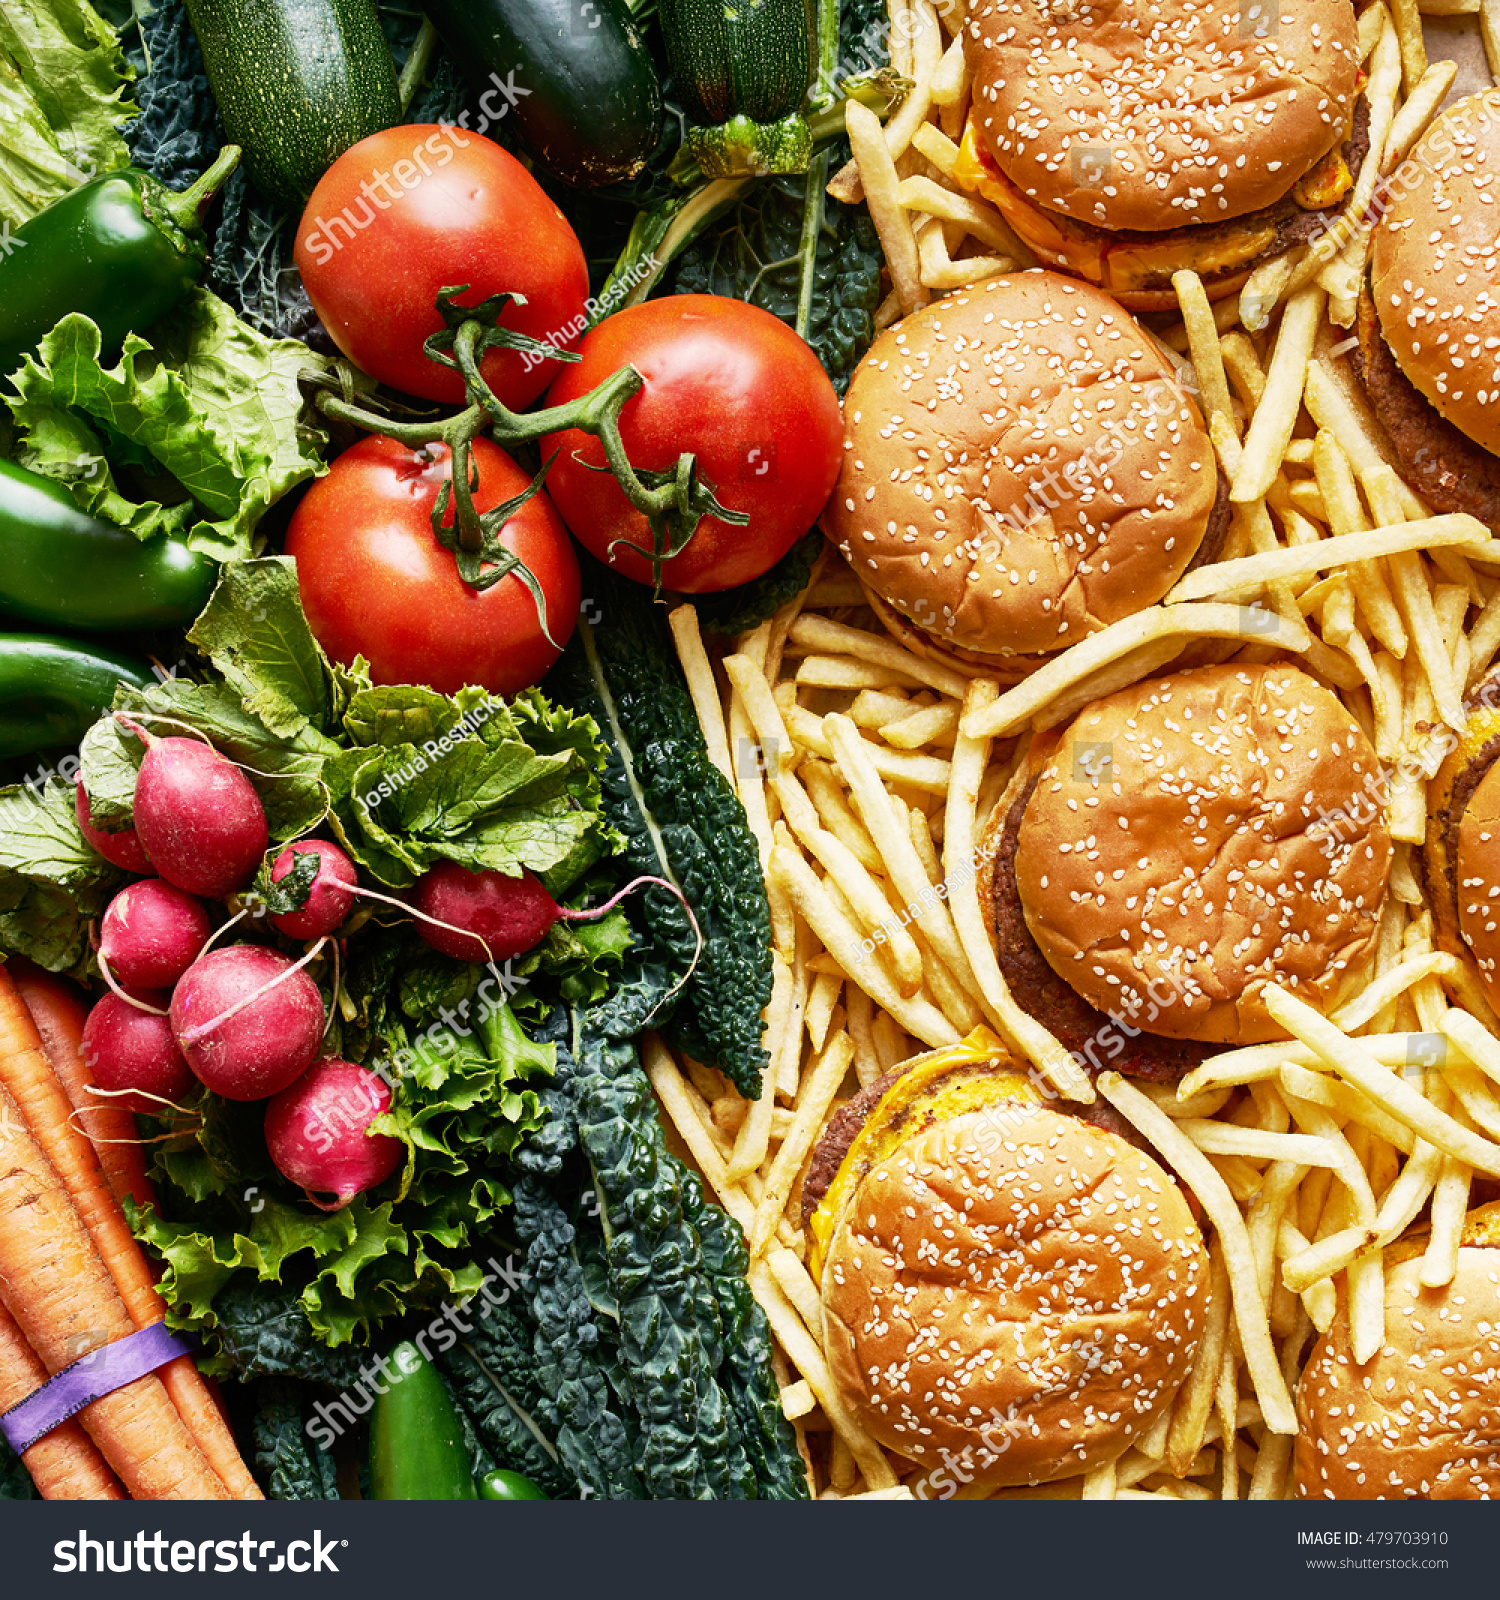 Healthy Vs Unhealthy Food Two Piles Stock Photo